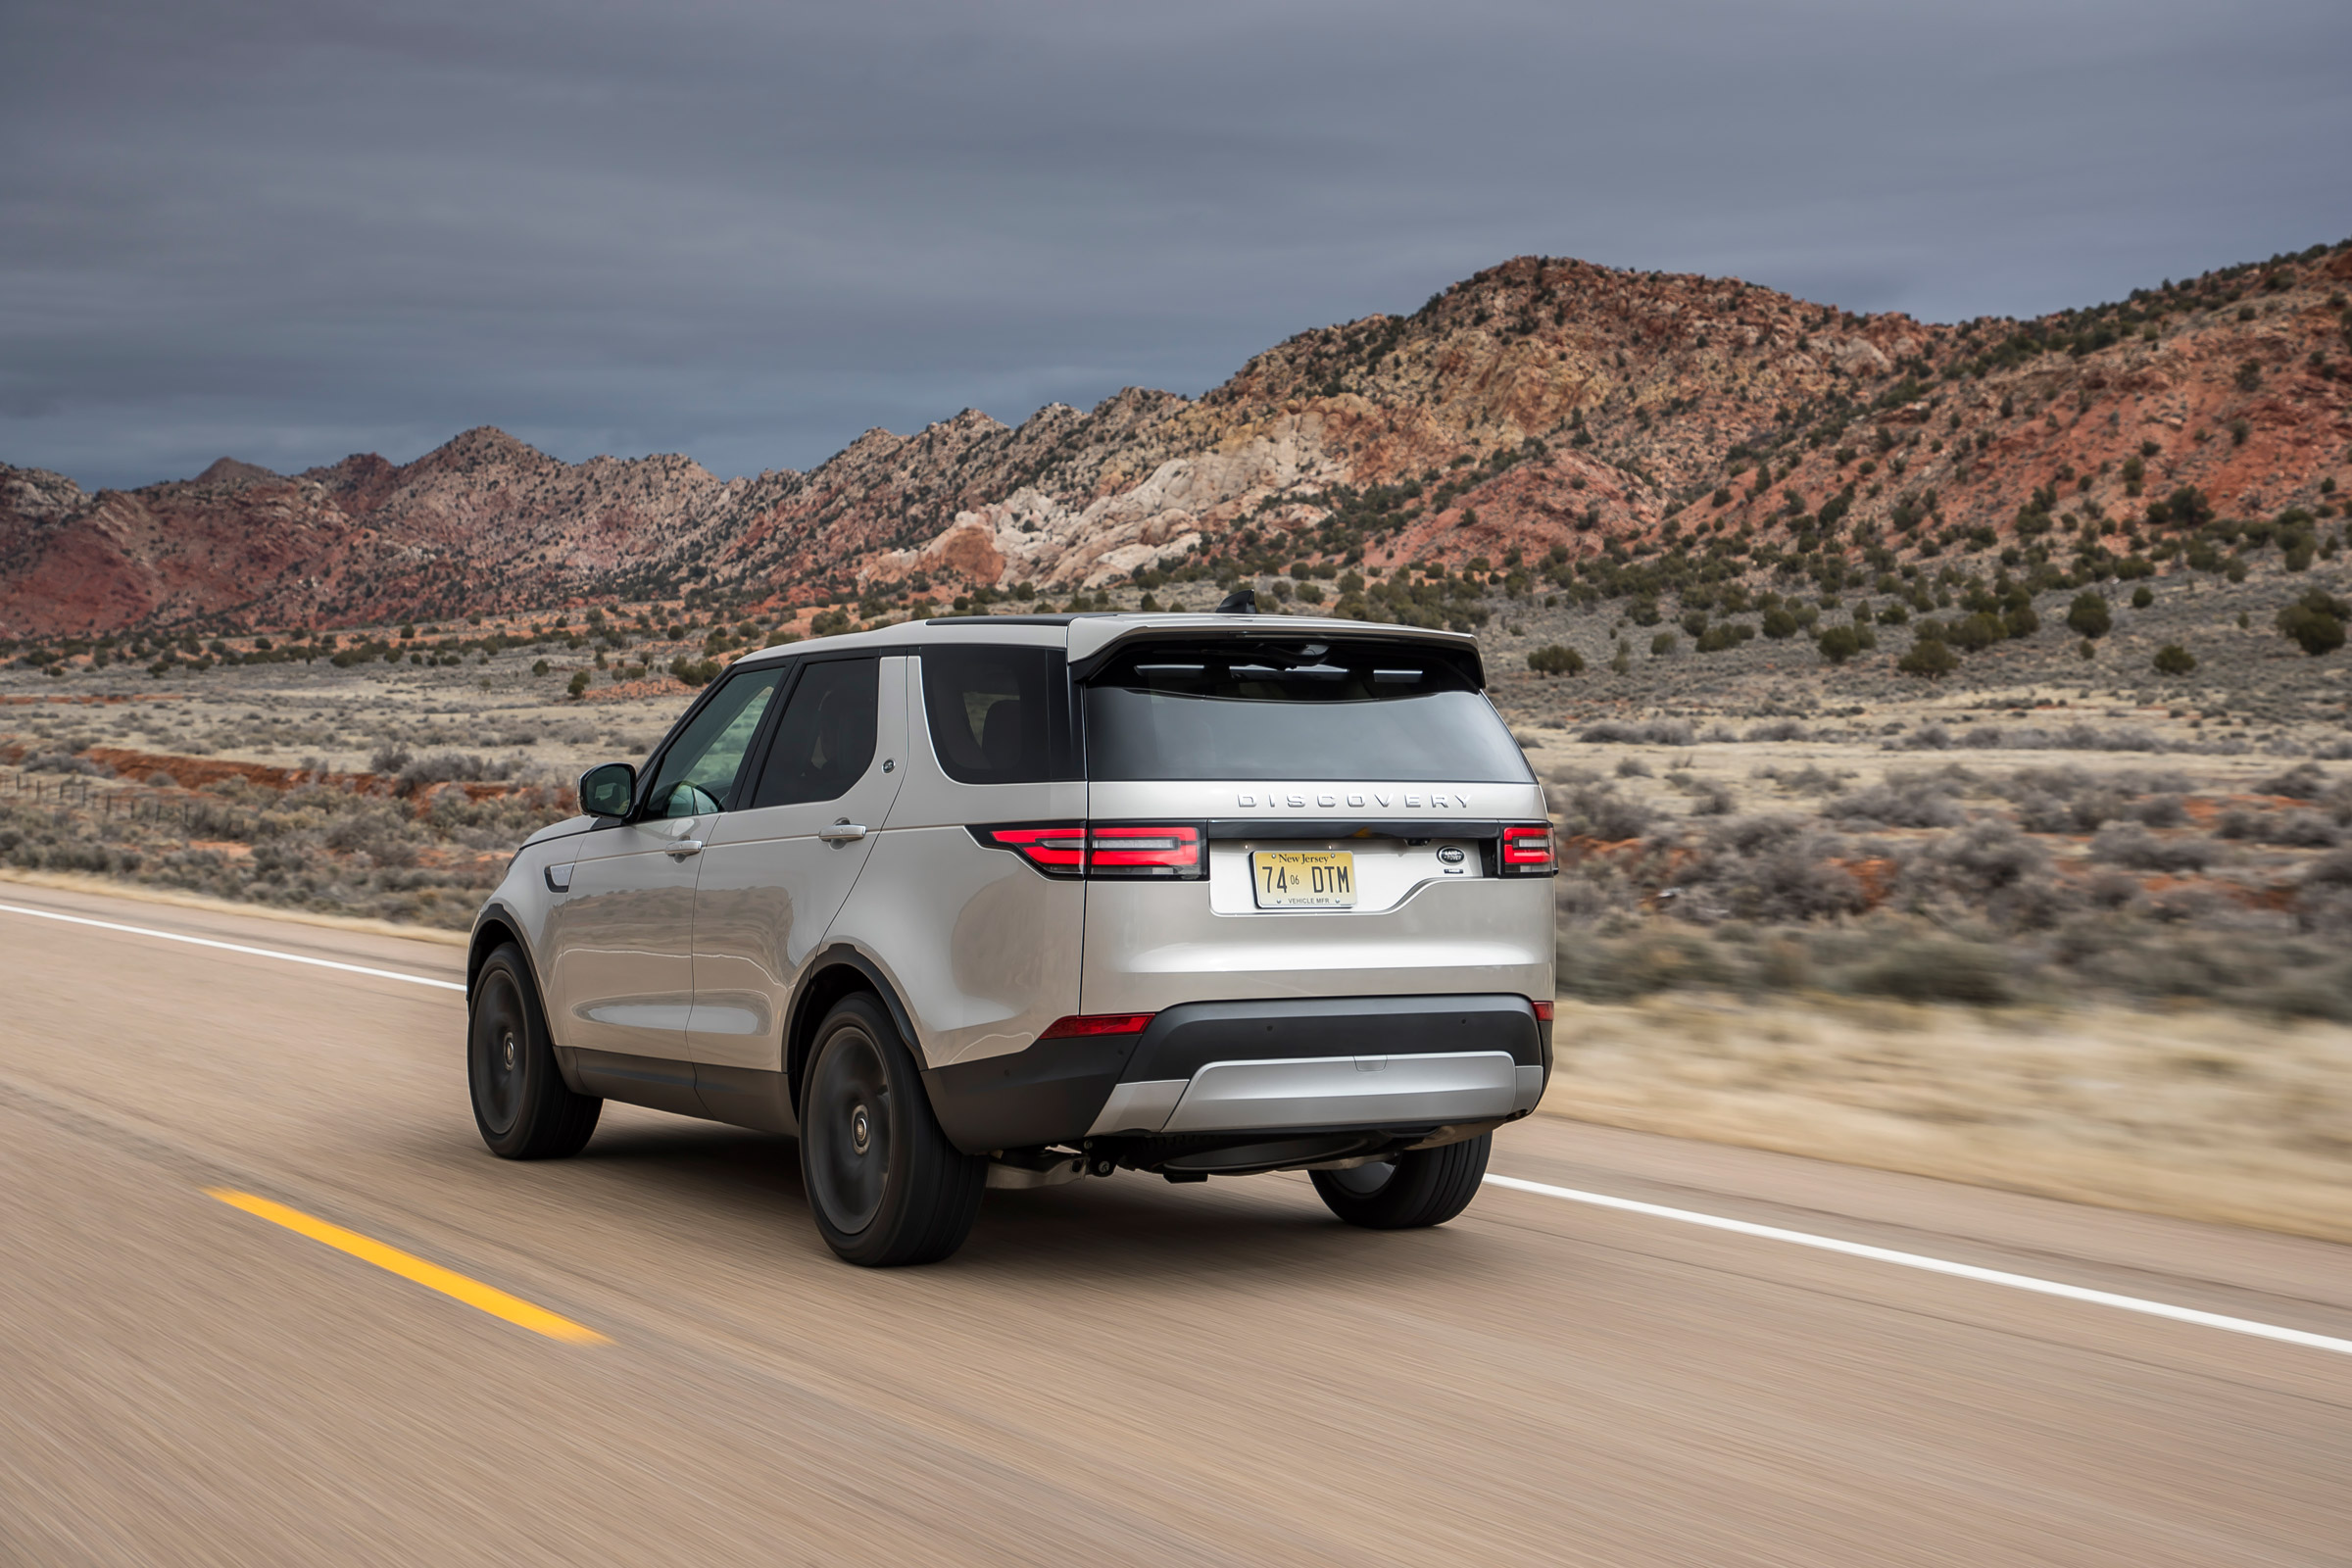 2017 Land Rover Discovery Test Drive Rear And Side View (Photo 14 of 17)